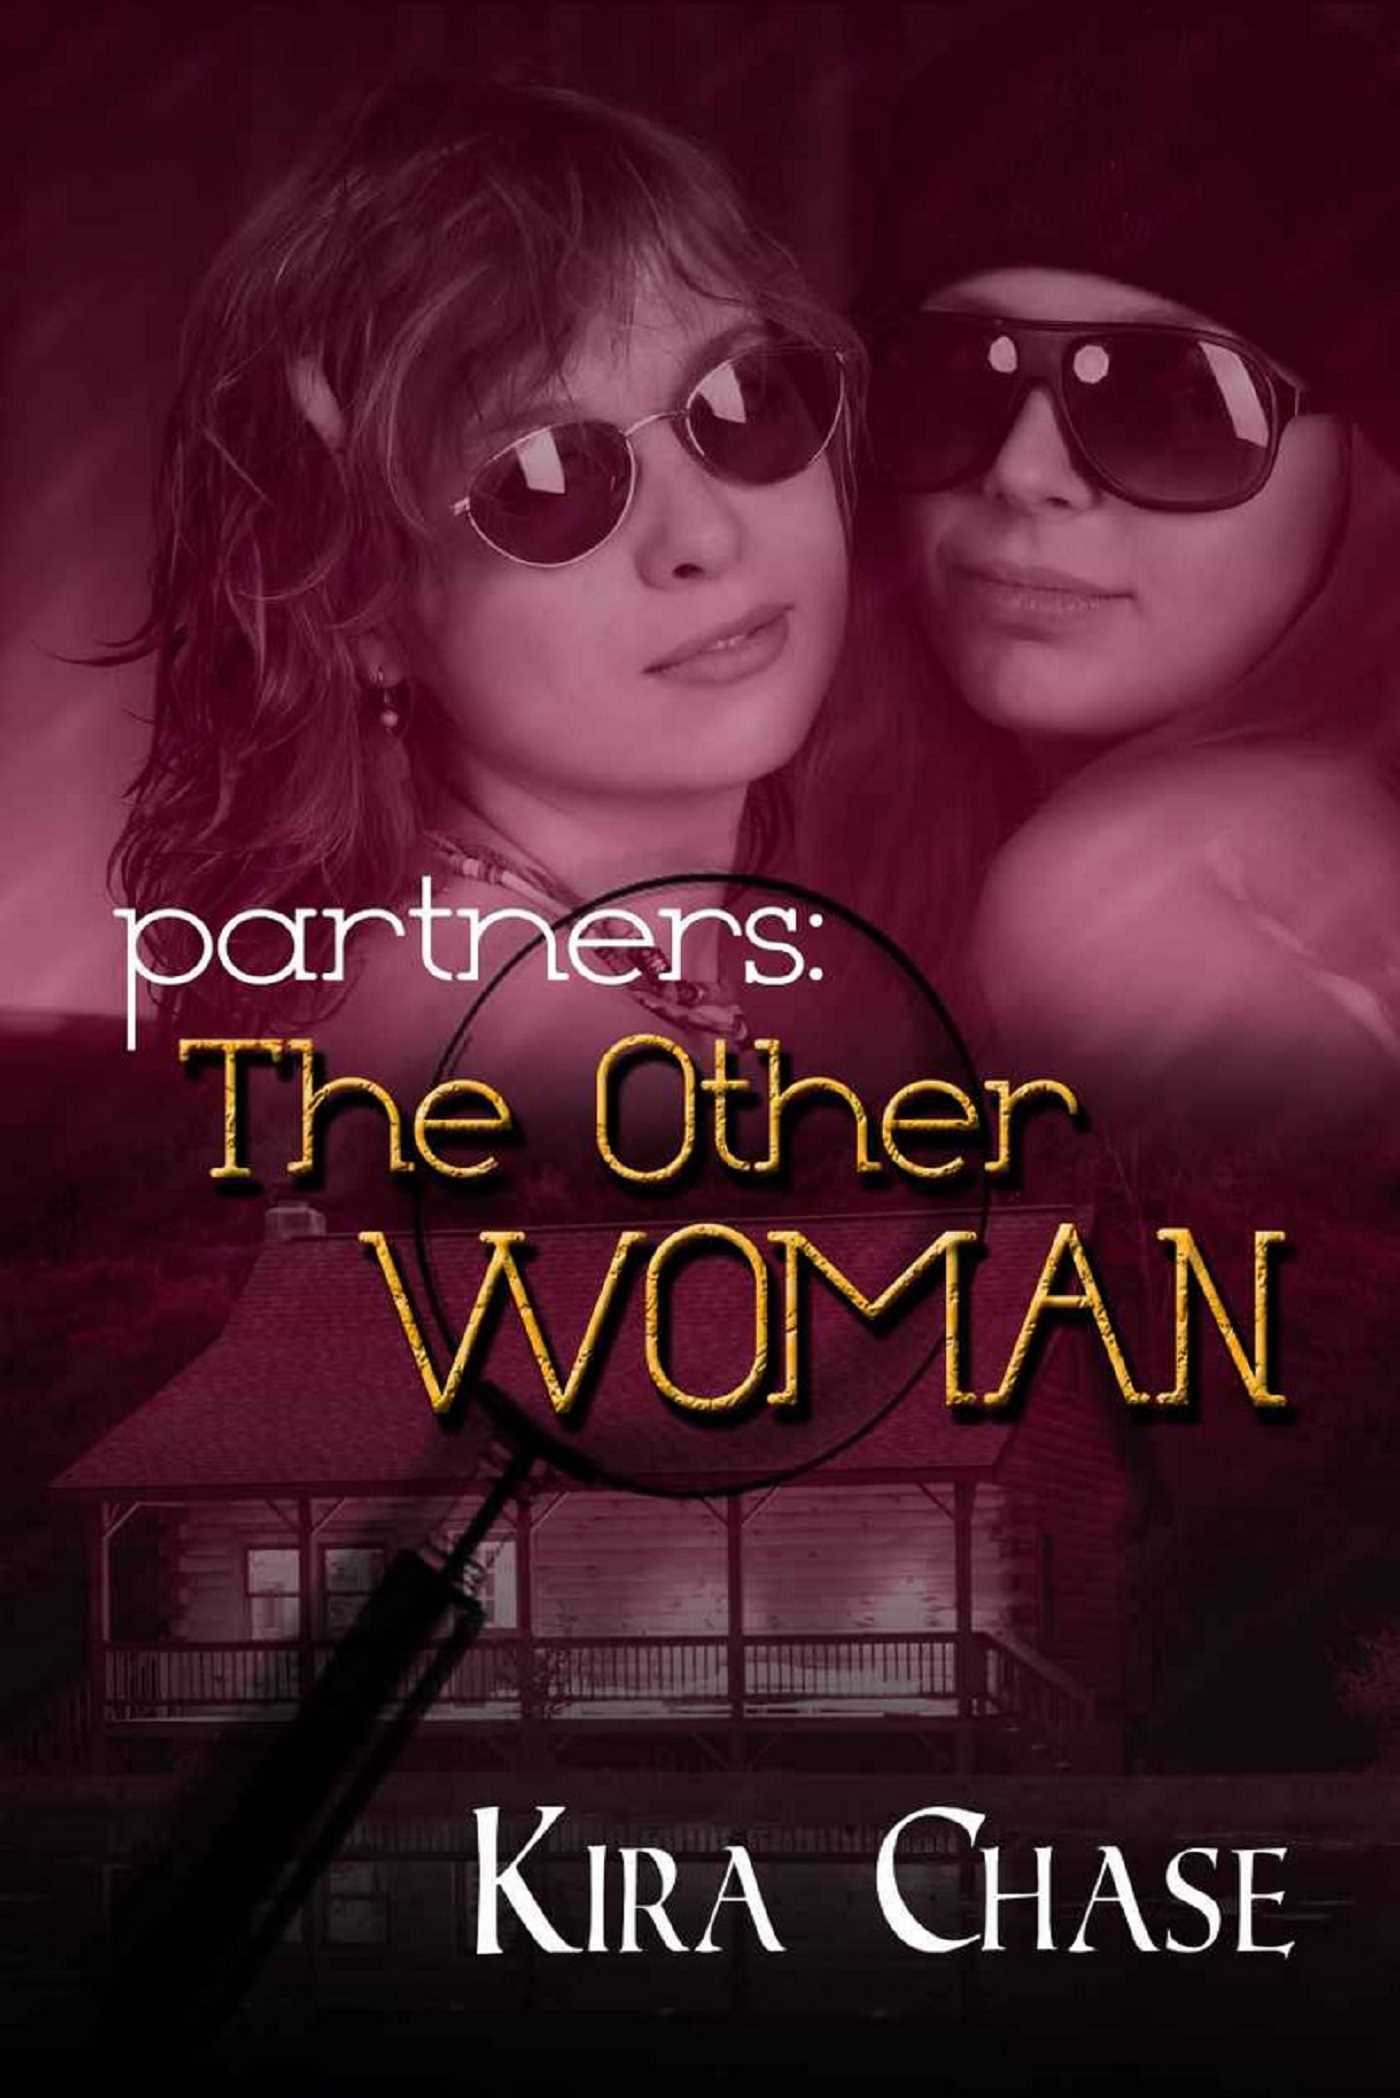 The other woman 9781603136778 hr